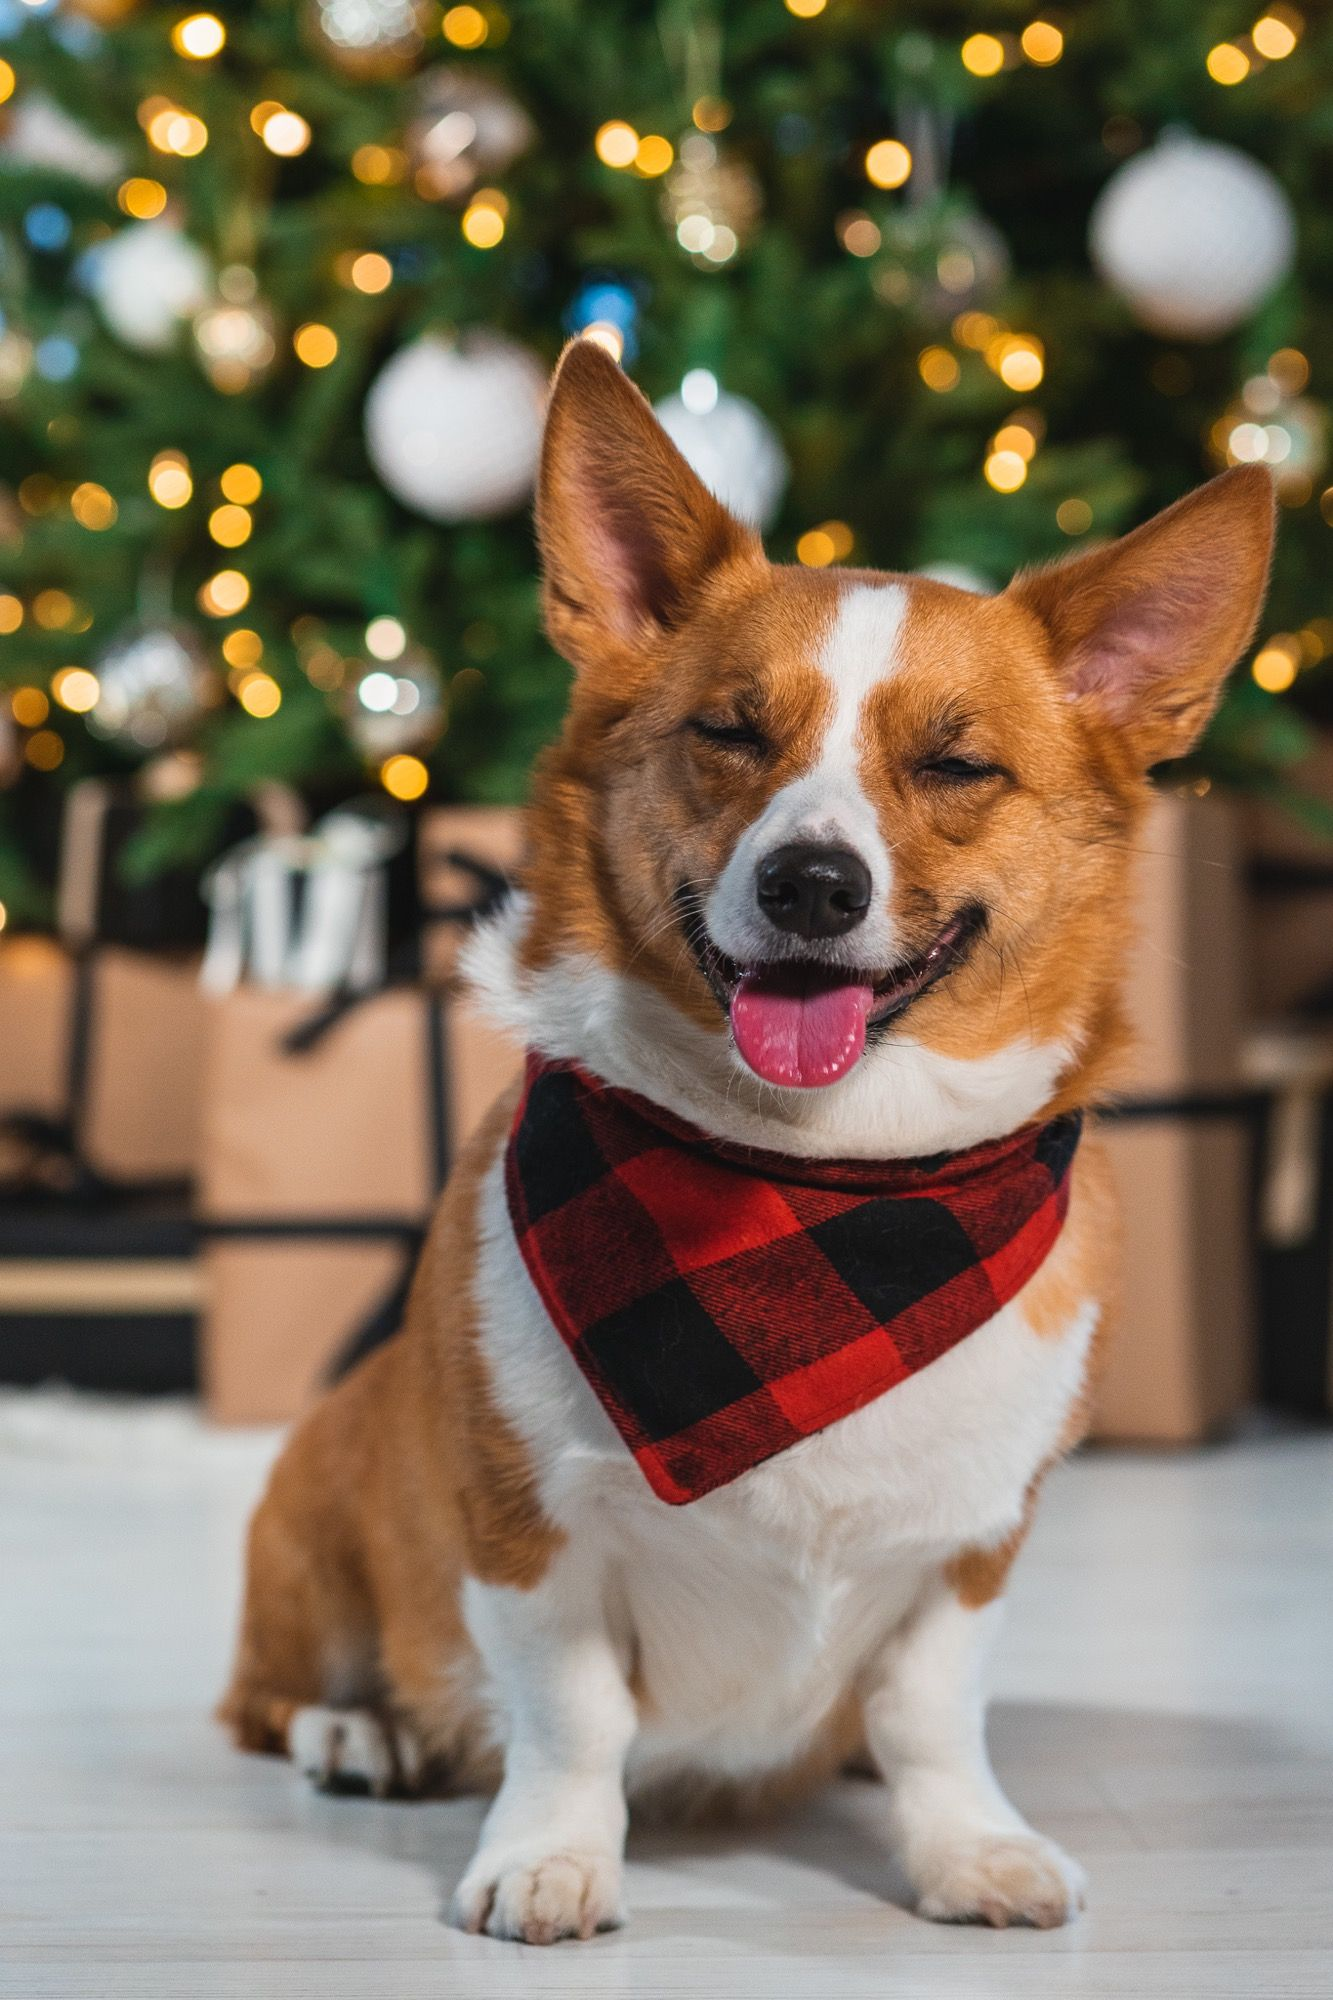 Merry Corgmas from Canada